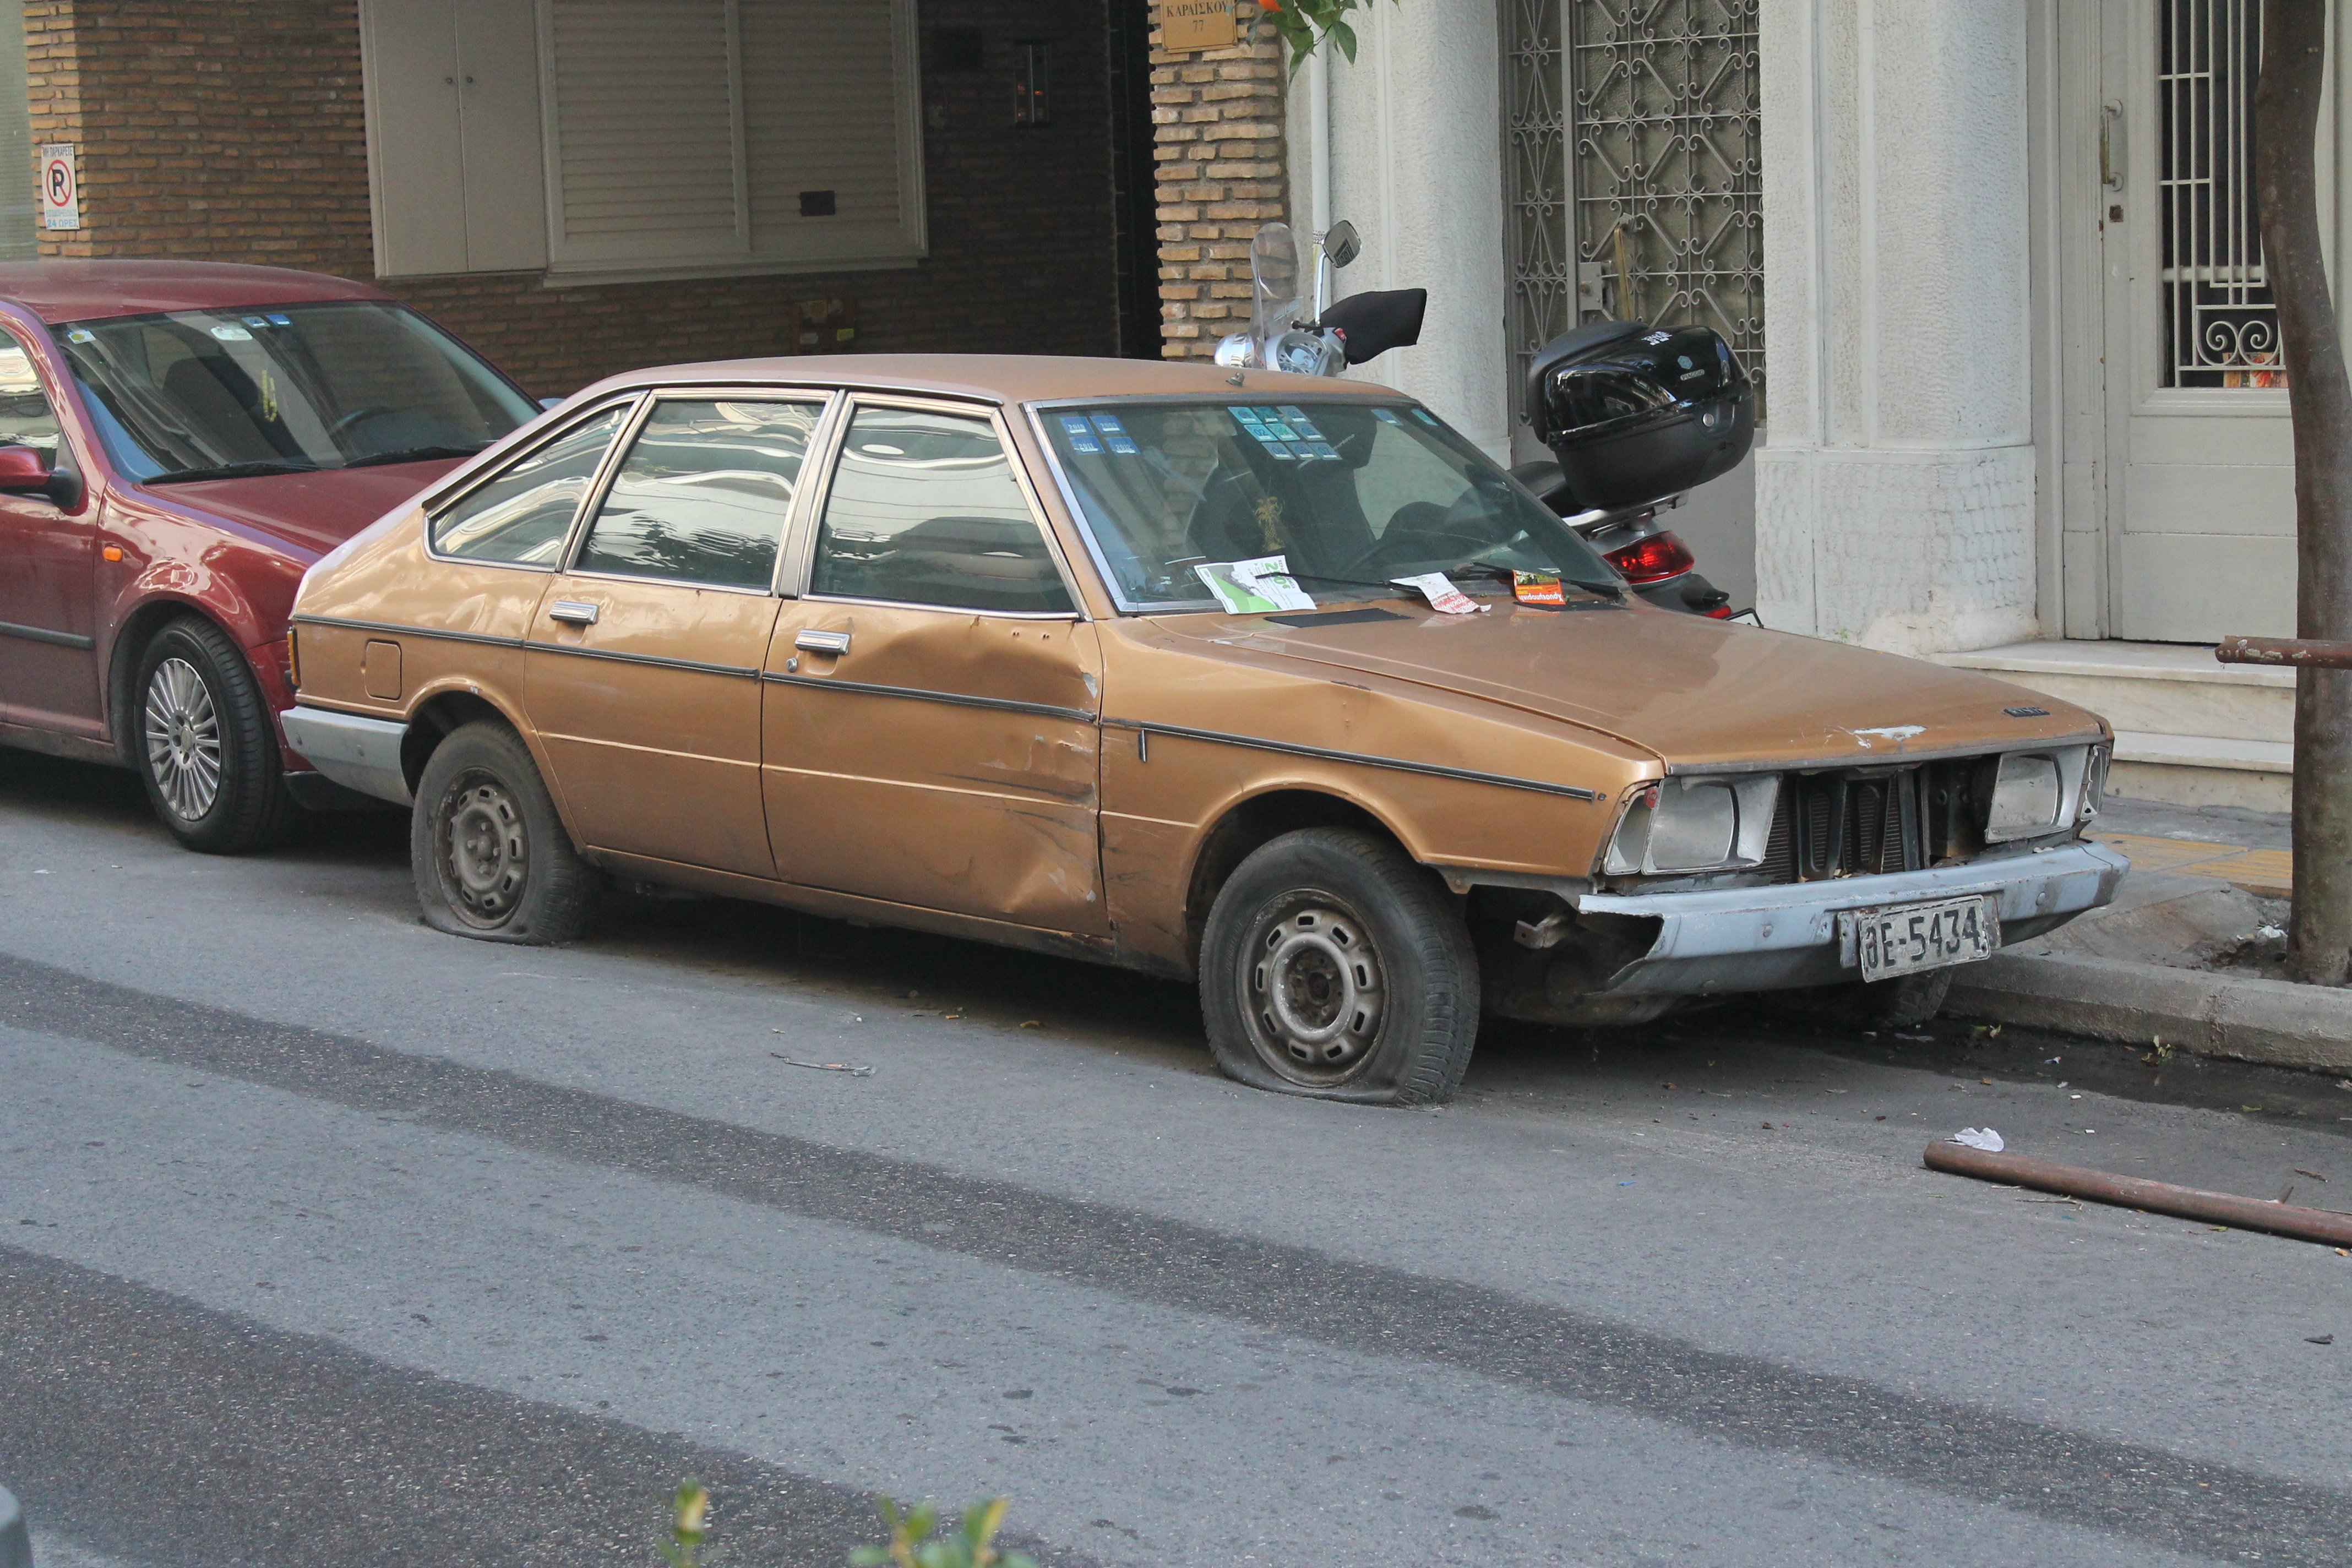 File:Abandoned Simca 1307 (Chrysler Alpine) (11571758553).jpg